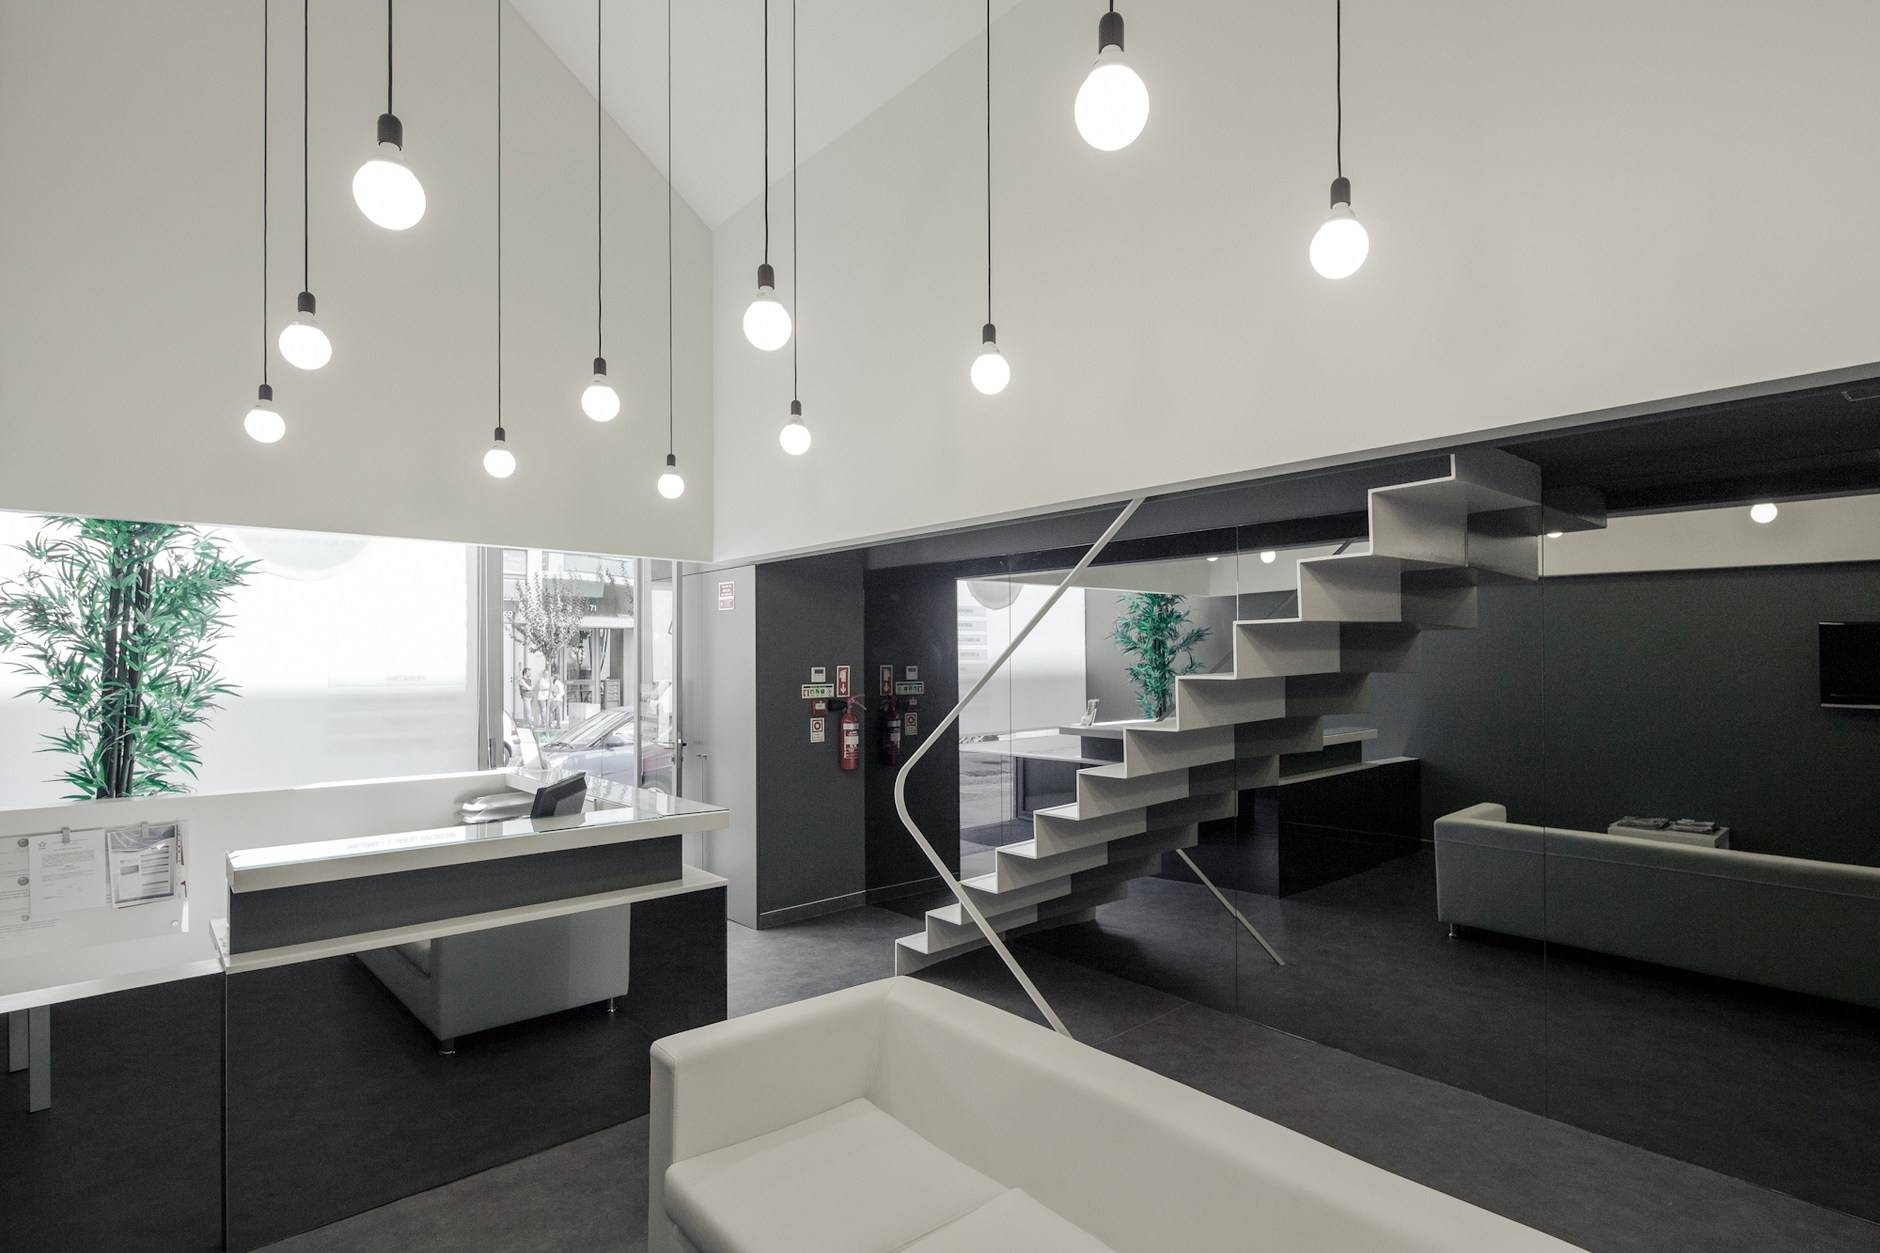 Dental clinic in oporto by paulo merlini karmatrendz for Dental clinic interior designs